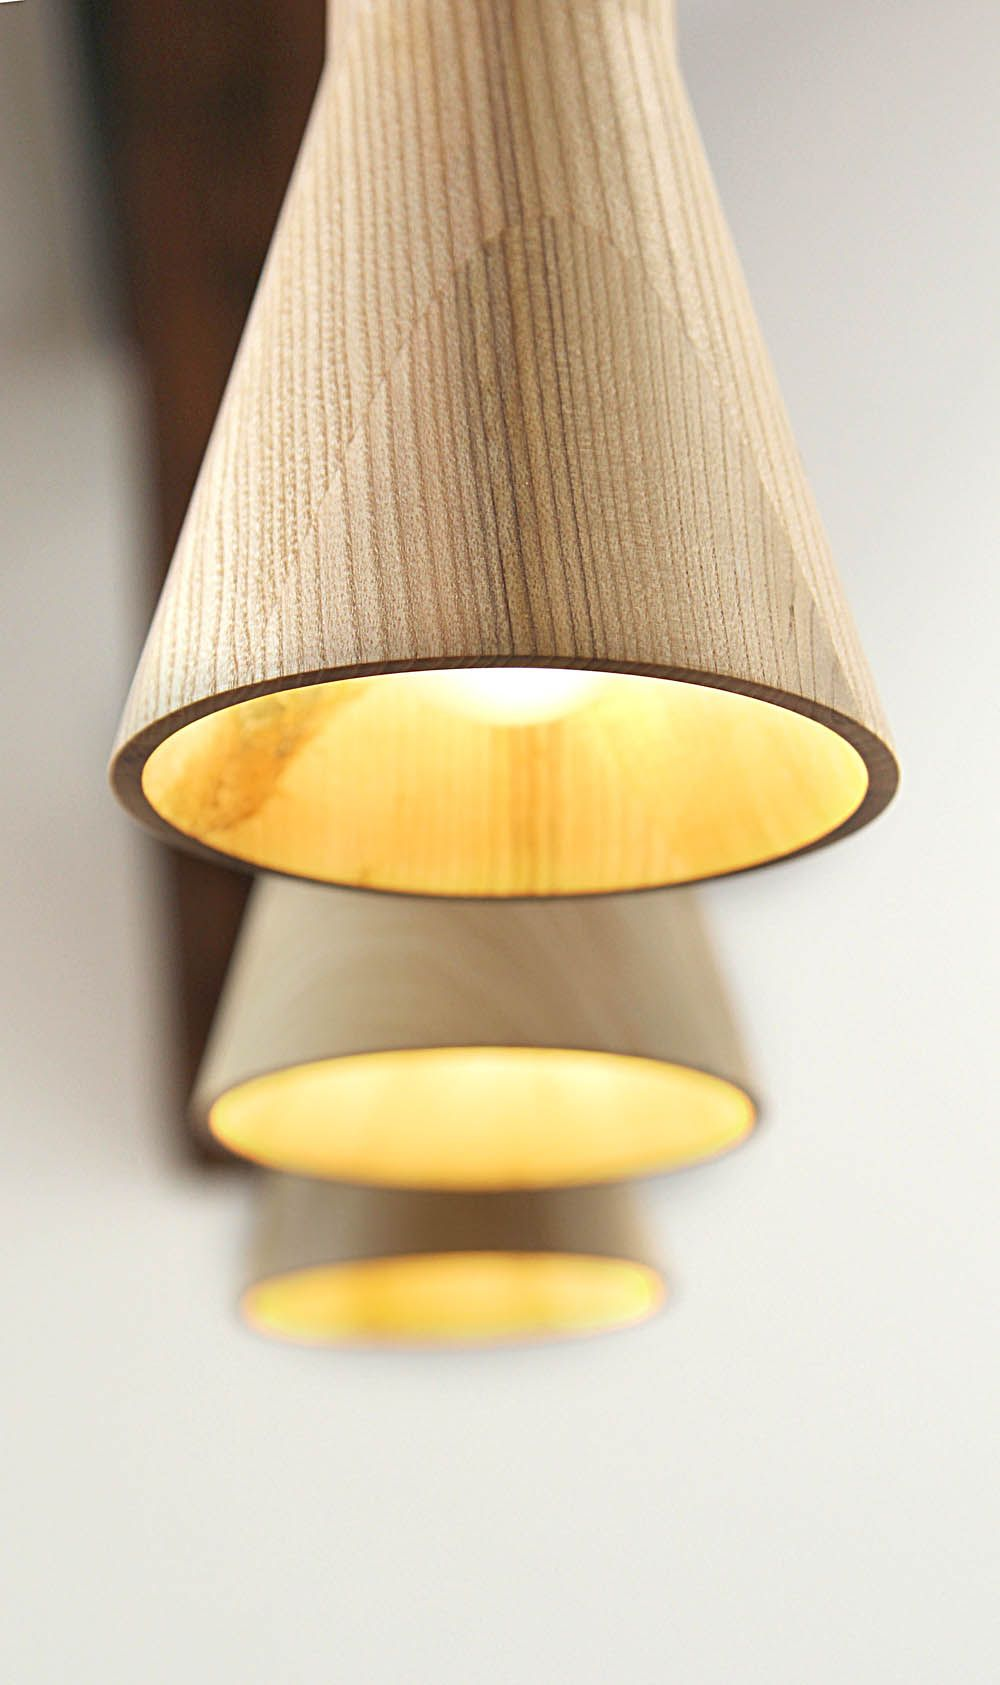 Teklight Lighty Lights Lamps Lampor Lampen Pinterest